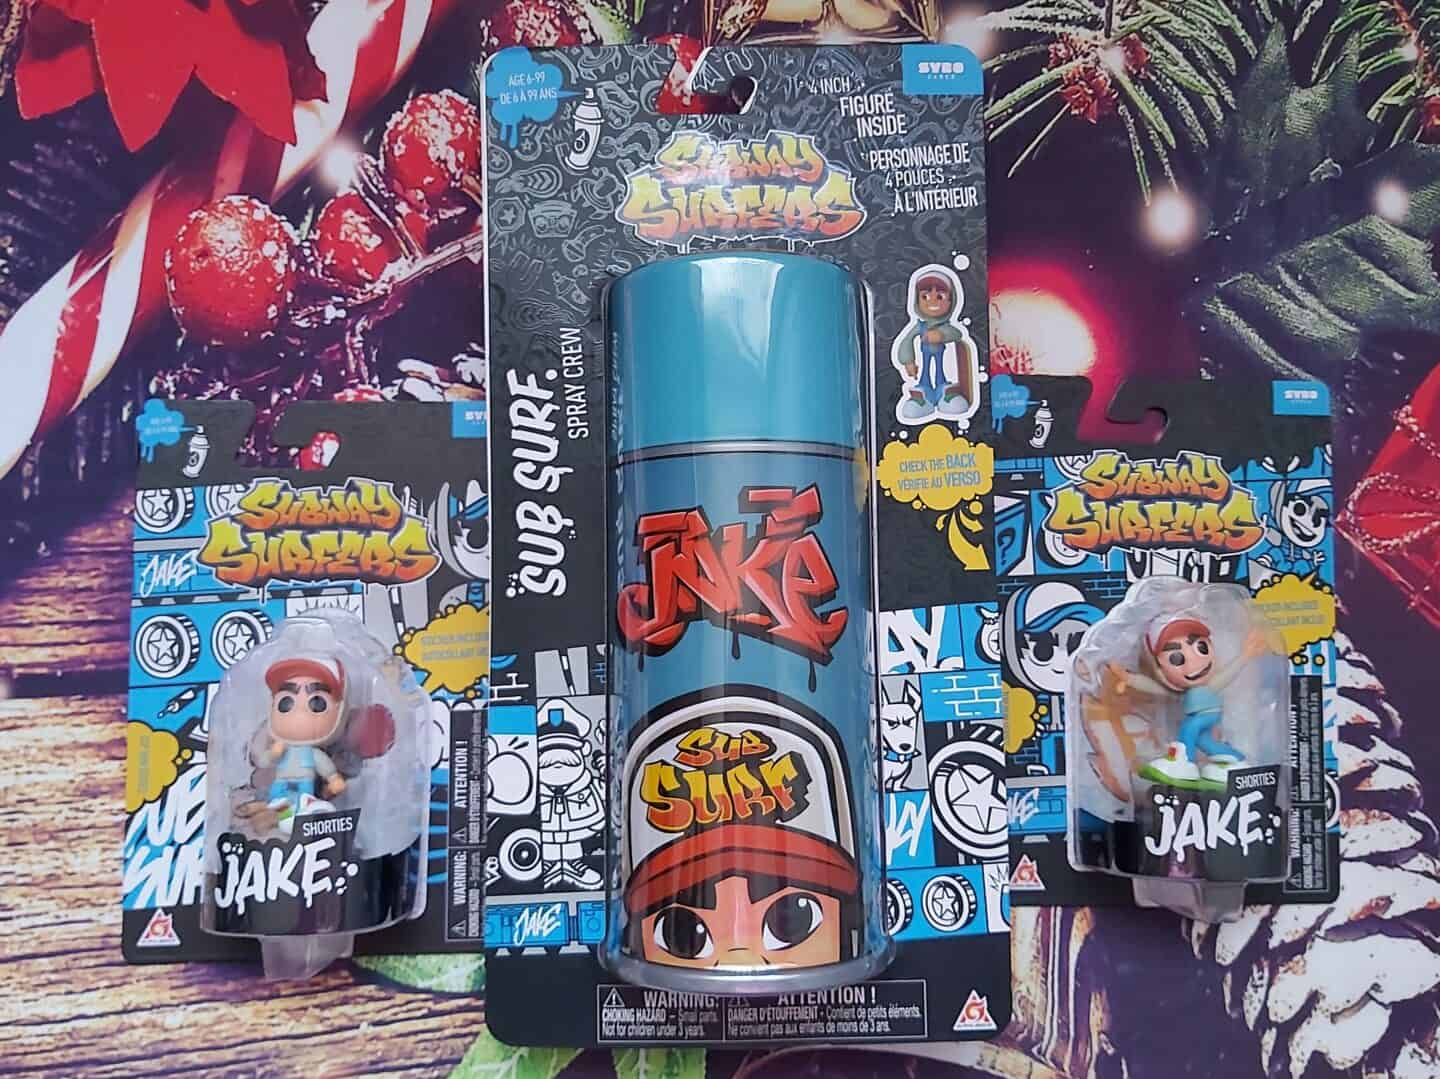 Subway Surfers spray can and vinyl figures on Christmas background